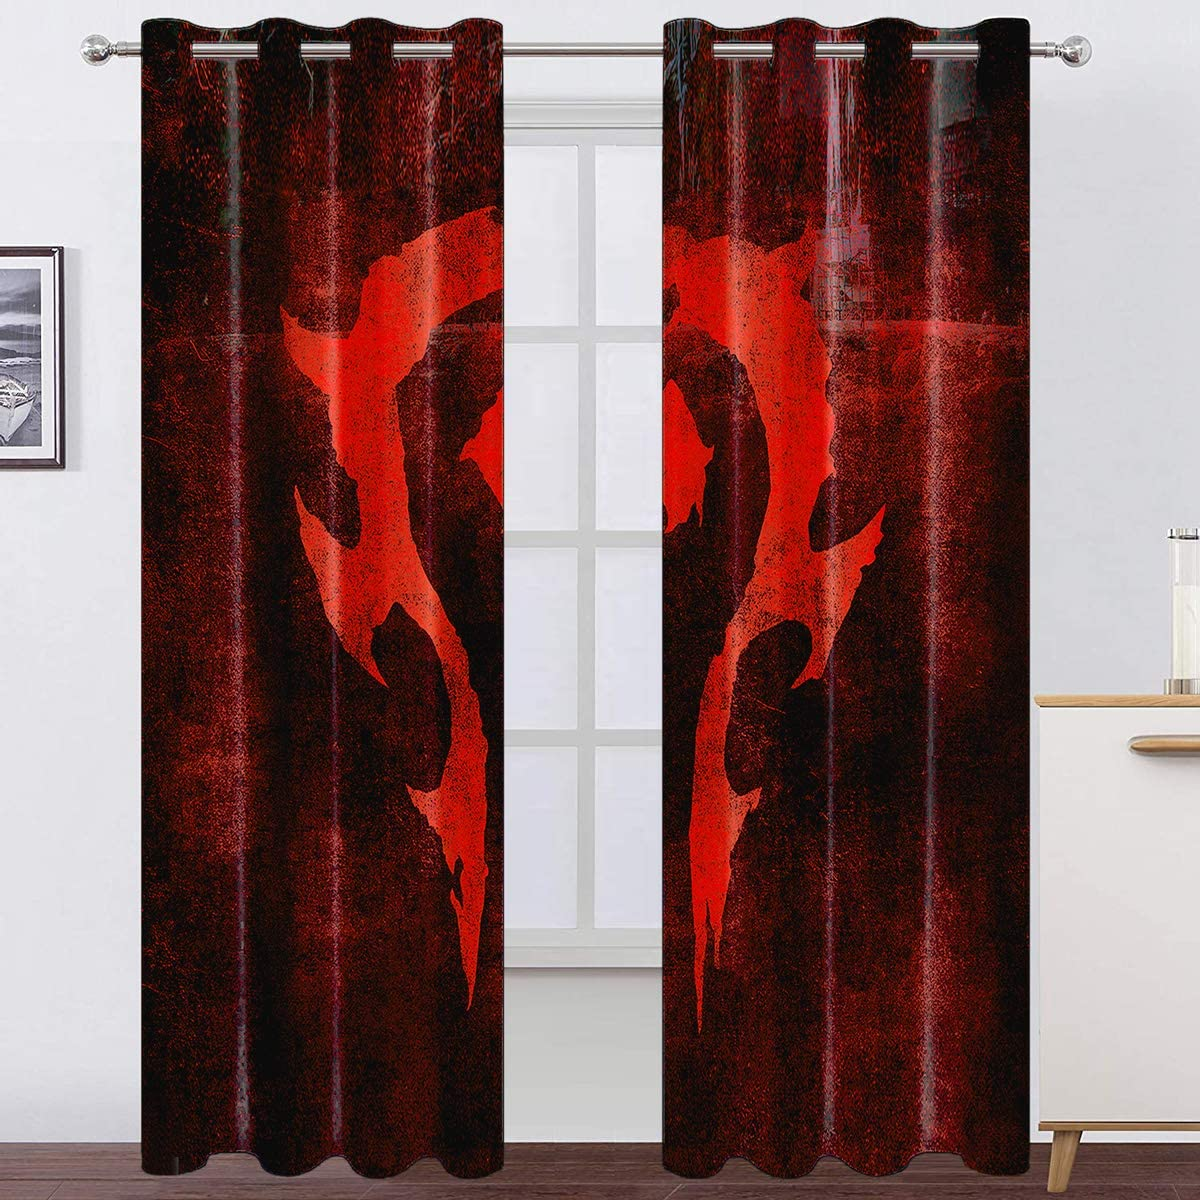 10. World of Warcraft Blackout Curtains with Game Pattern